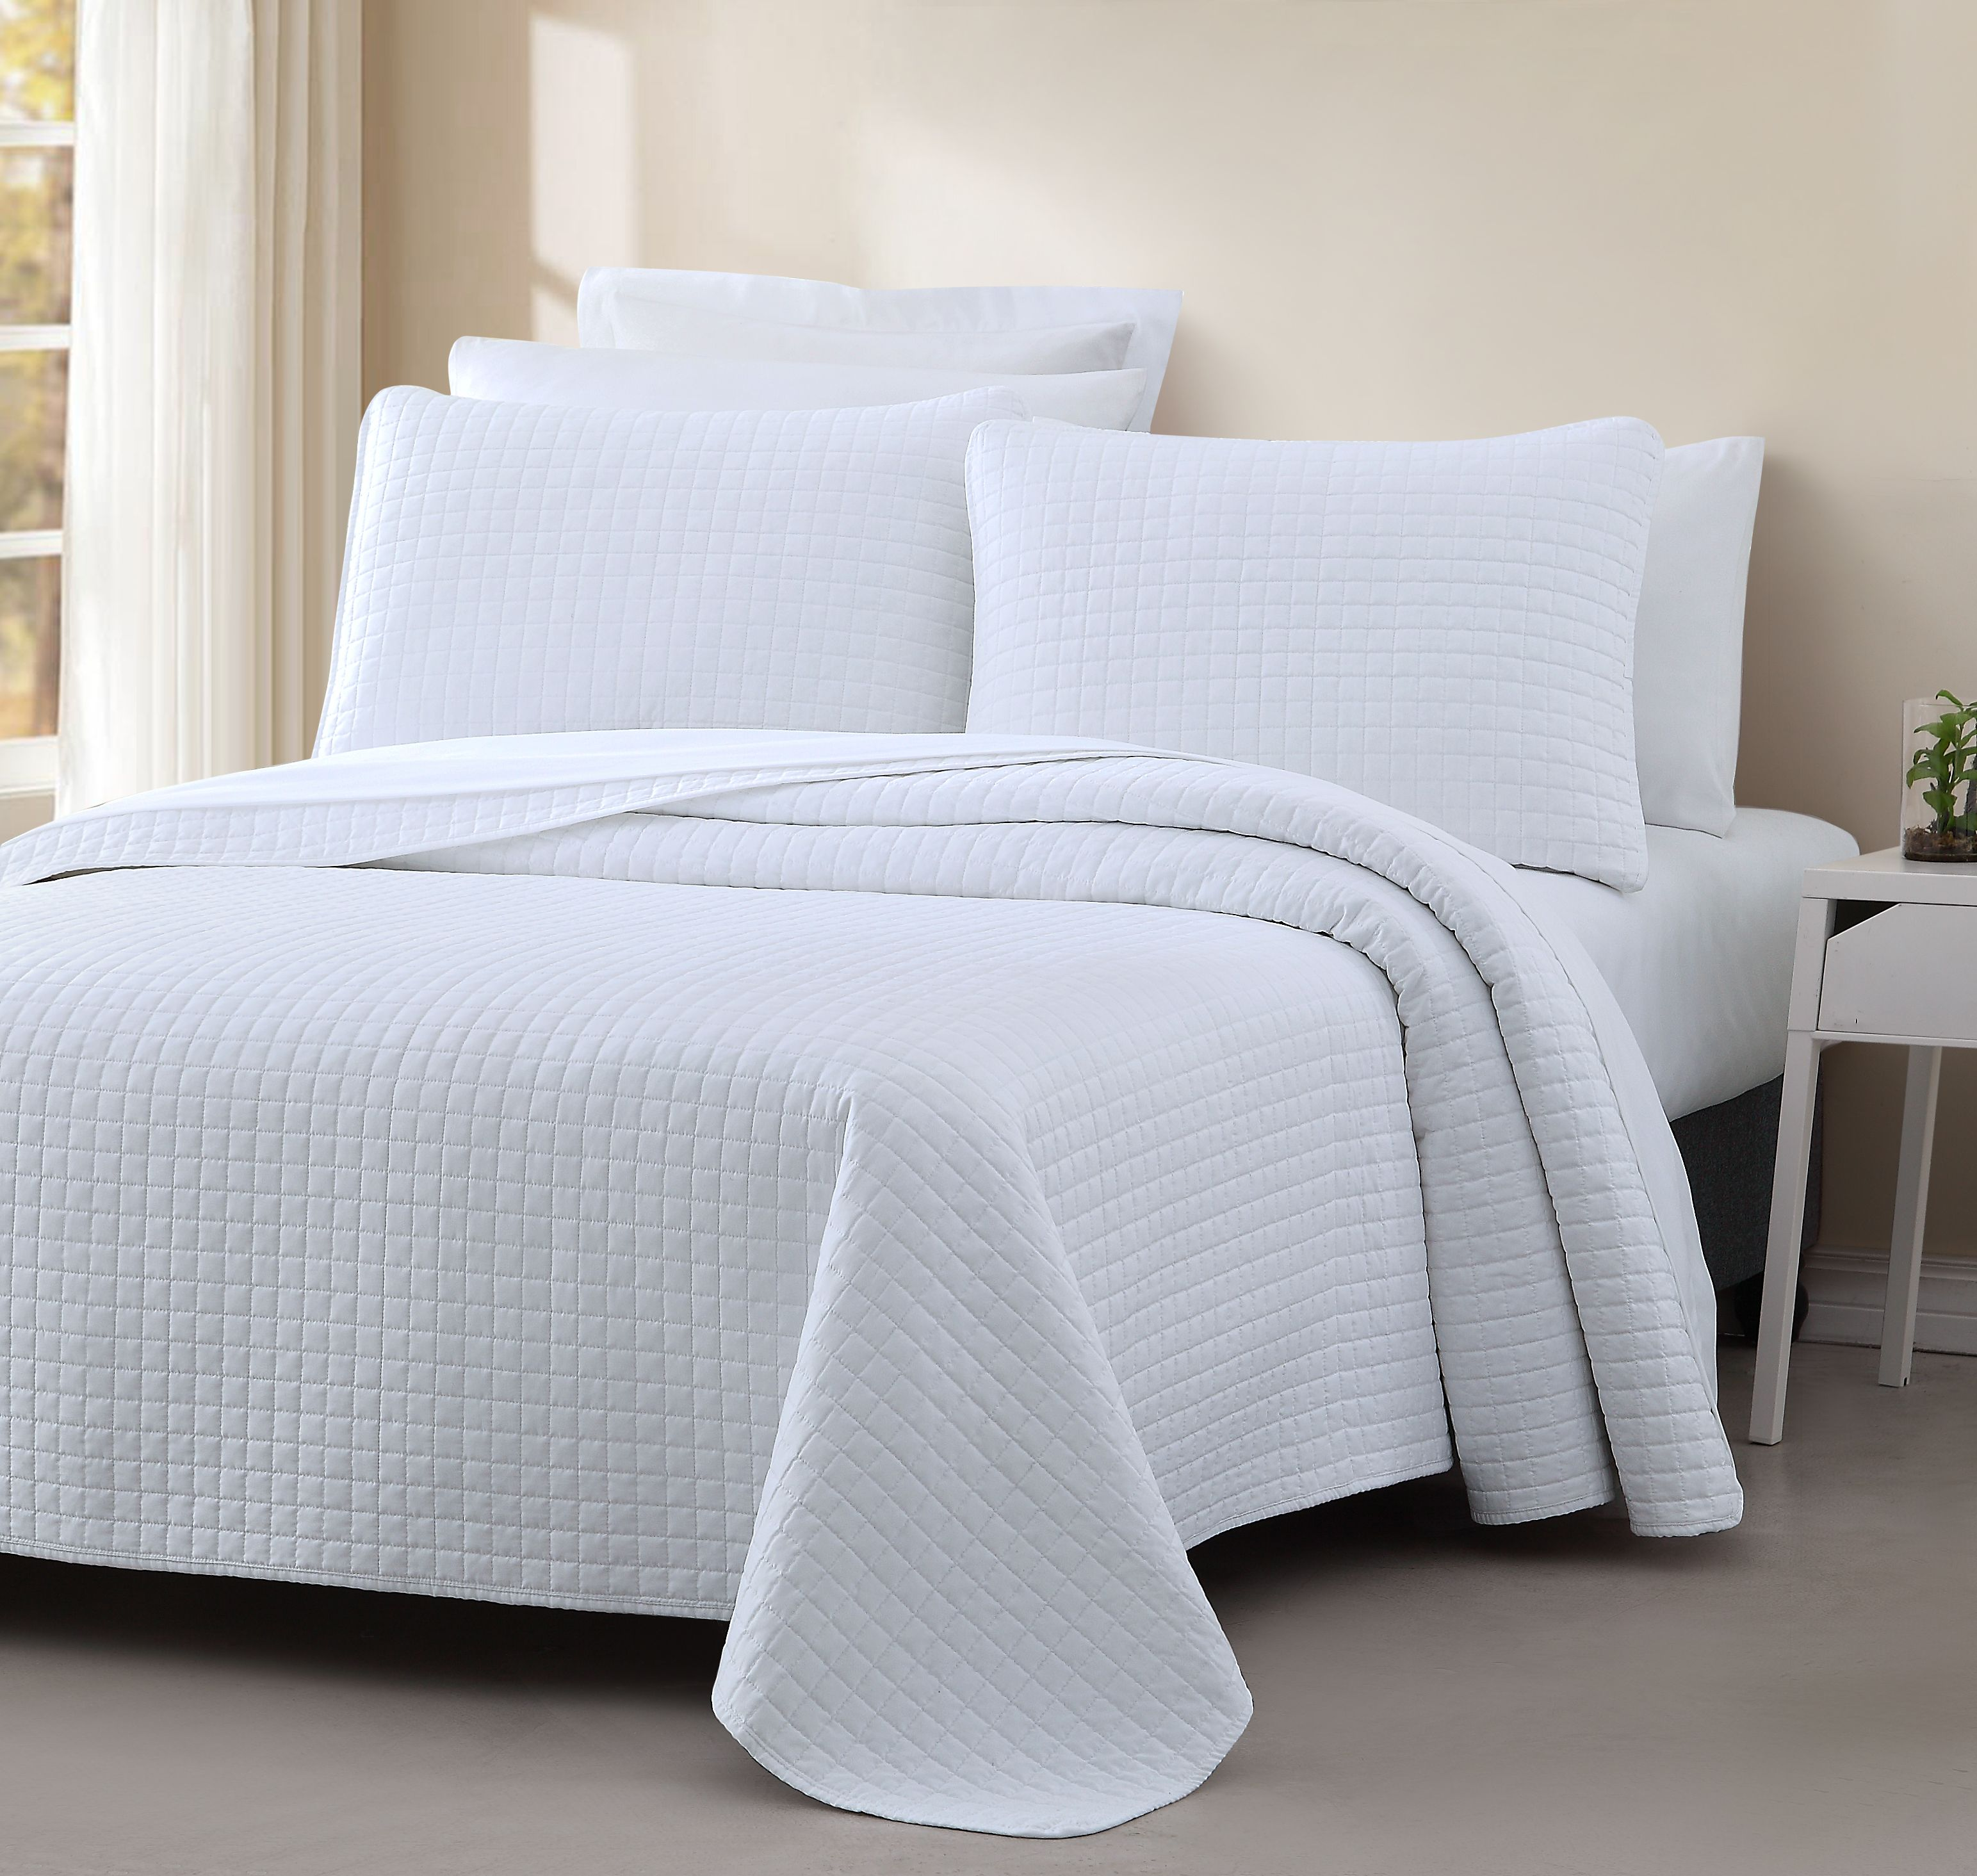 Cozy Beddings Quilted Coverlet Set Attitude Collection Bedspread PREWASHED Cover Set, Square Stitched Design